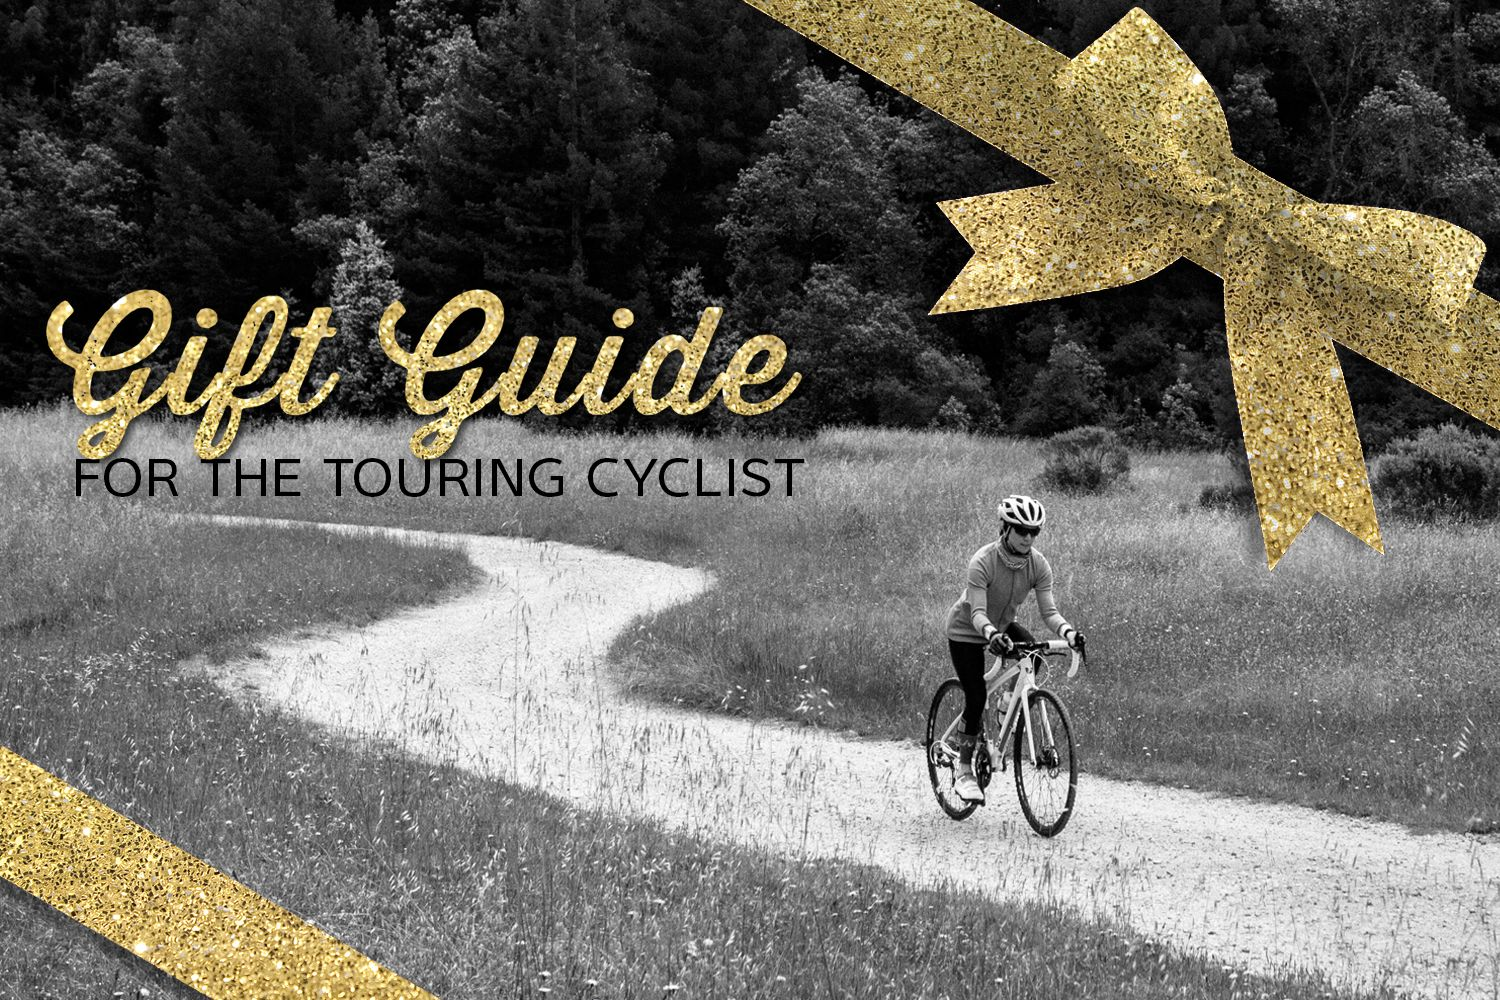 Holiday Gift Guide for the Touring Cyclist | Bike Touring | Gifts for Cyclists | Liv-Cycling